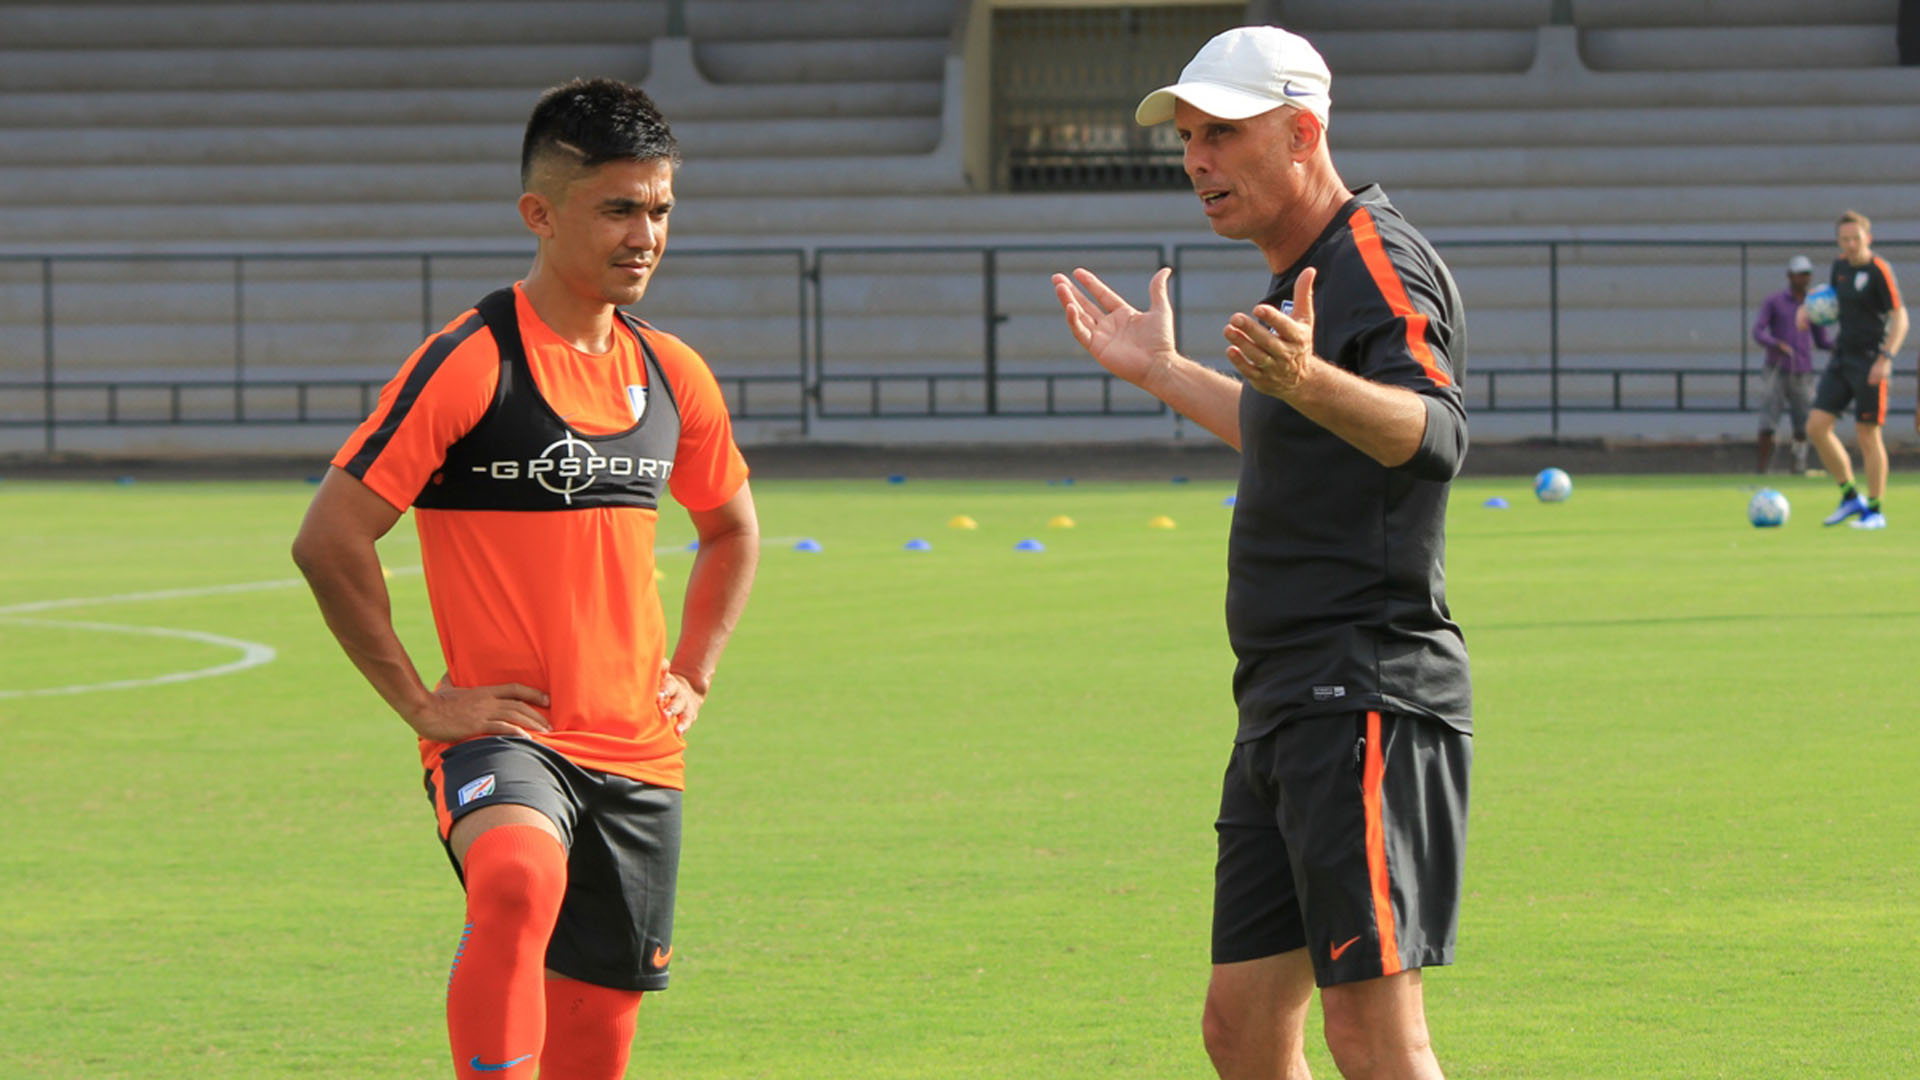 India expect tough challenge against Kyrgyzstan: Stephen Constantine